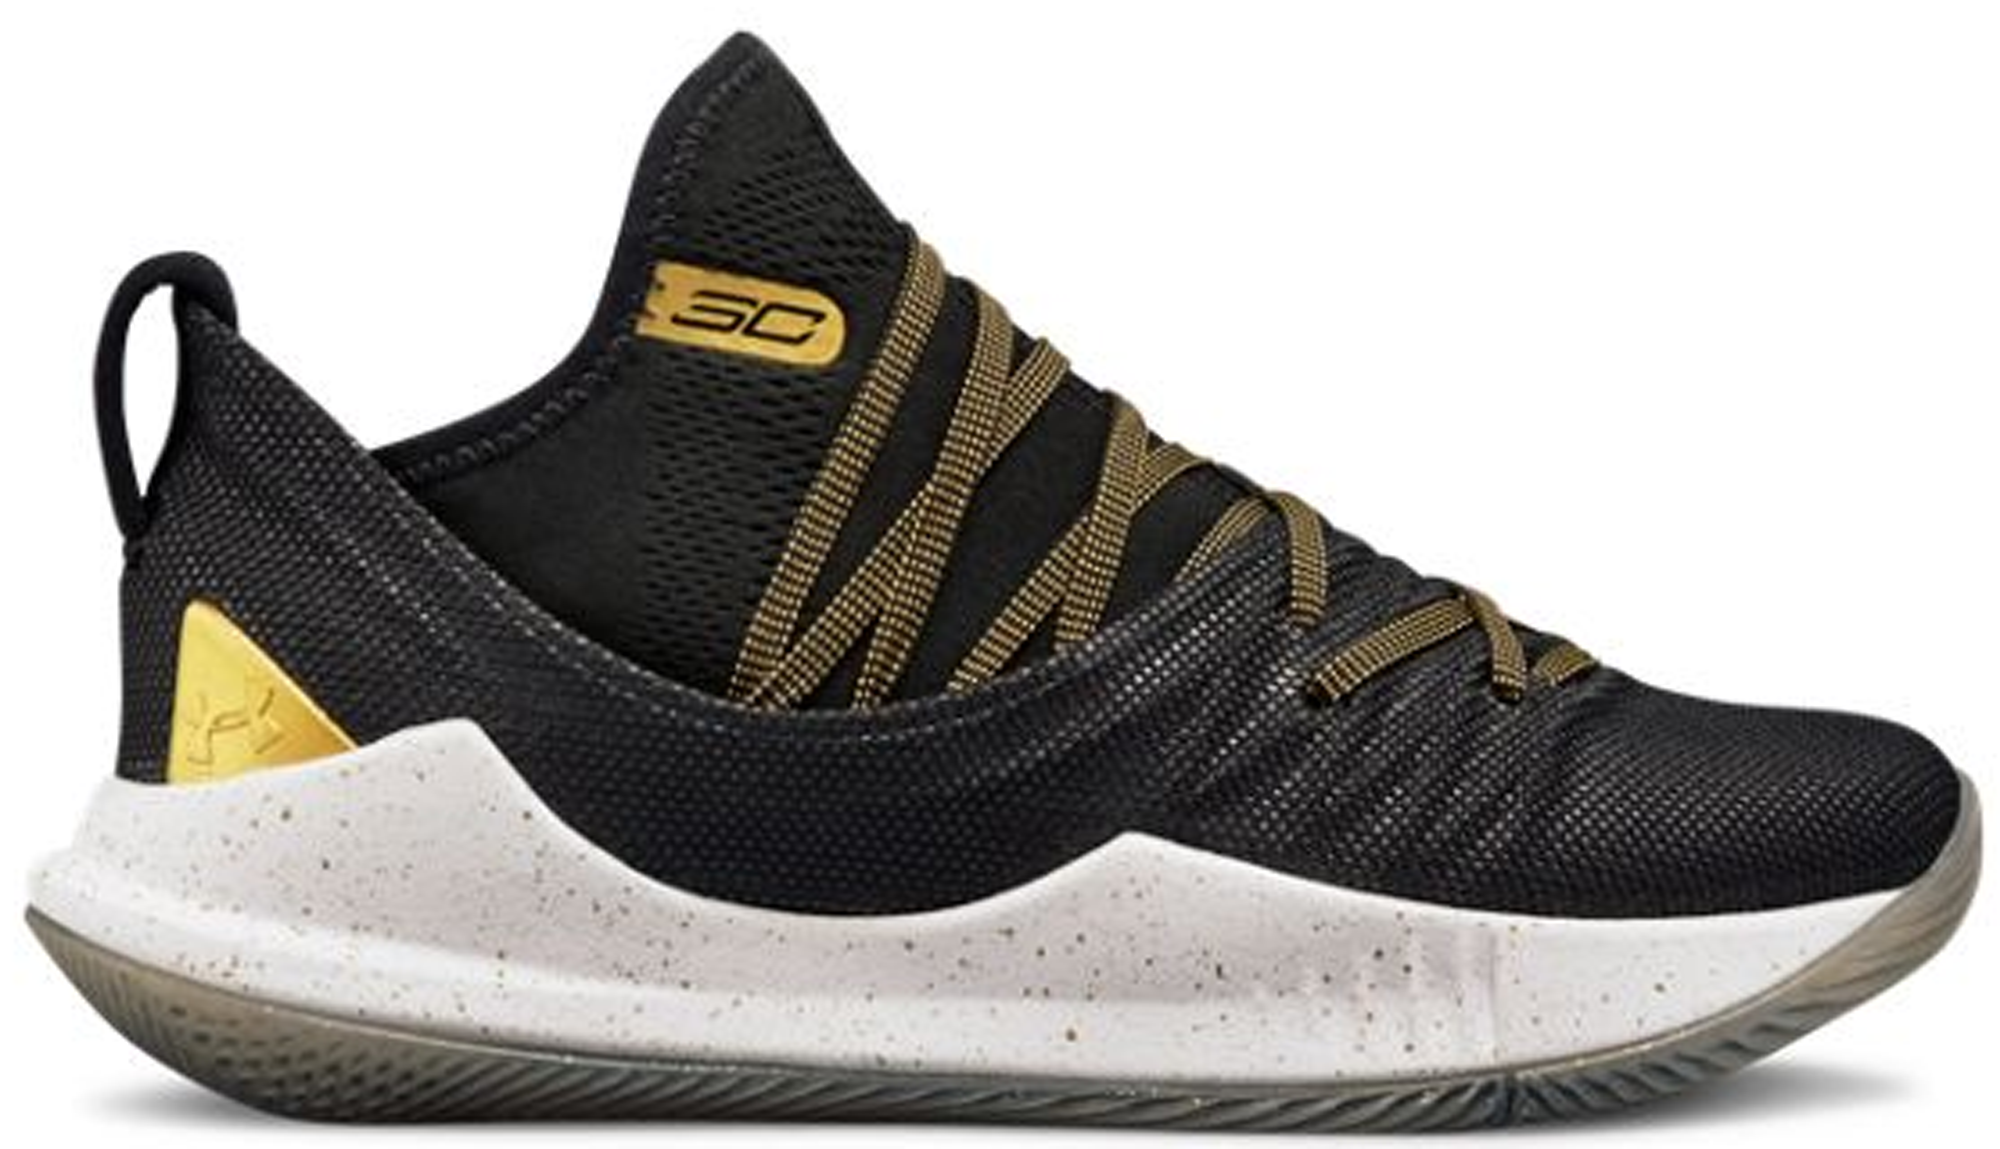 Under Armour Curry 5 Championship Pack Black (GS)